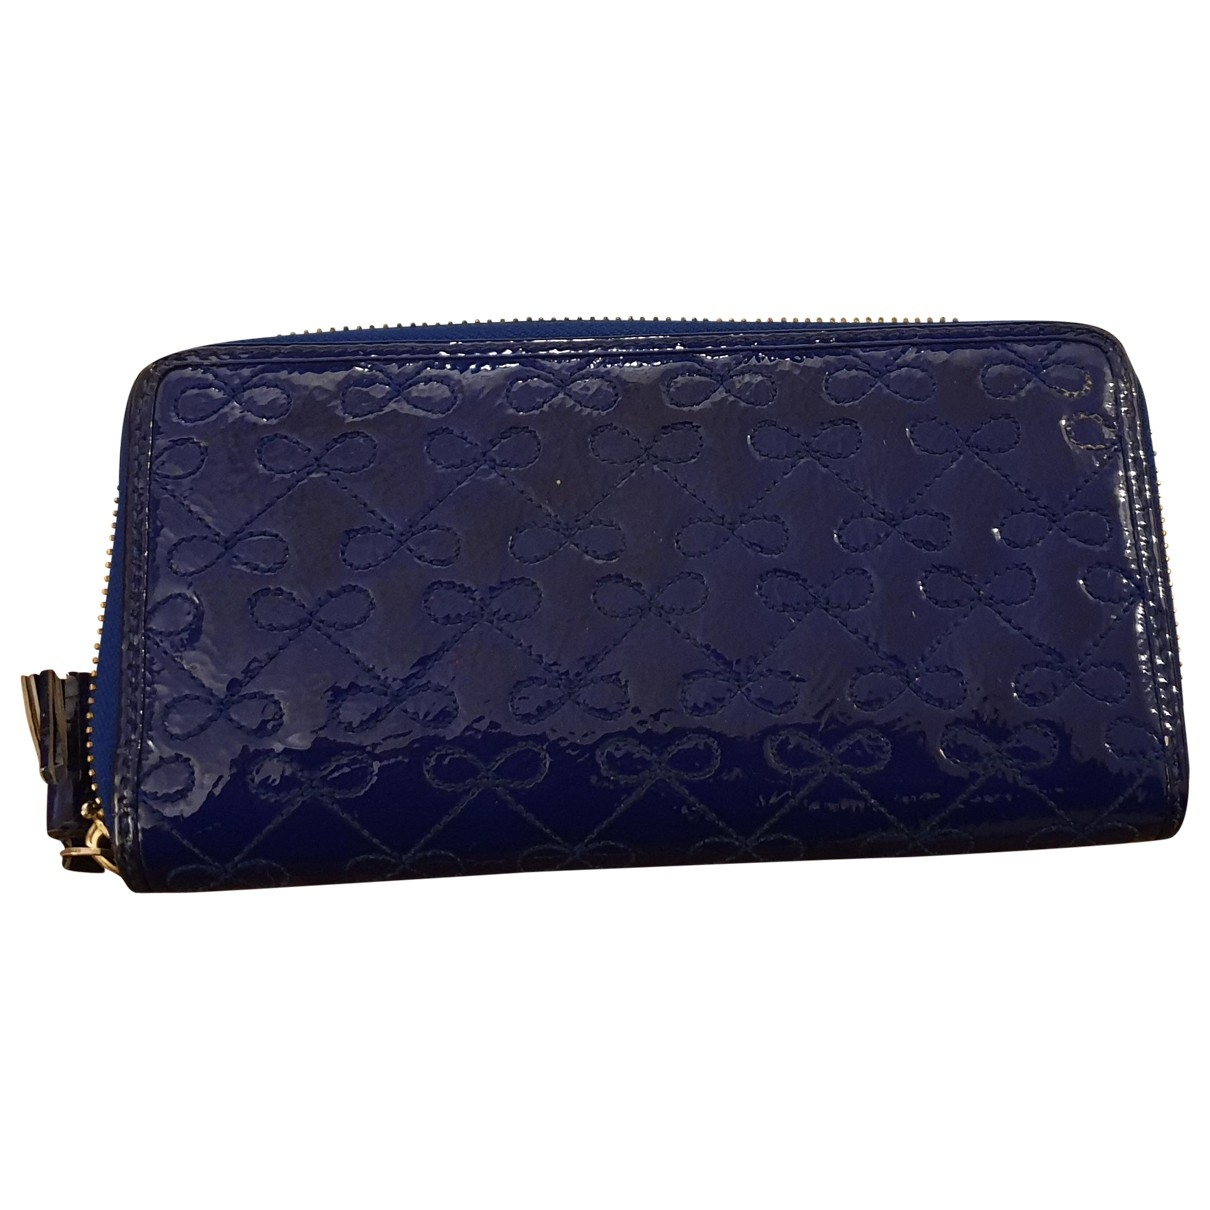 Anya Hindmarch \N Blue Patent leather wallet for Women \N